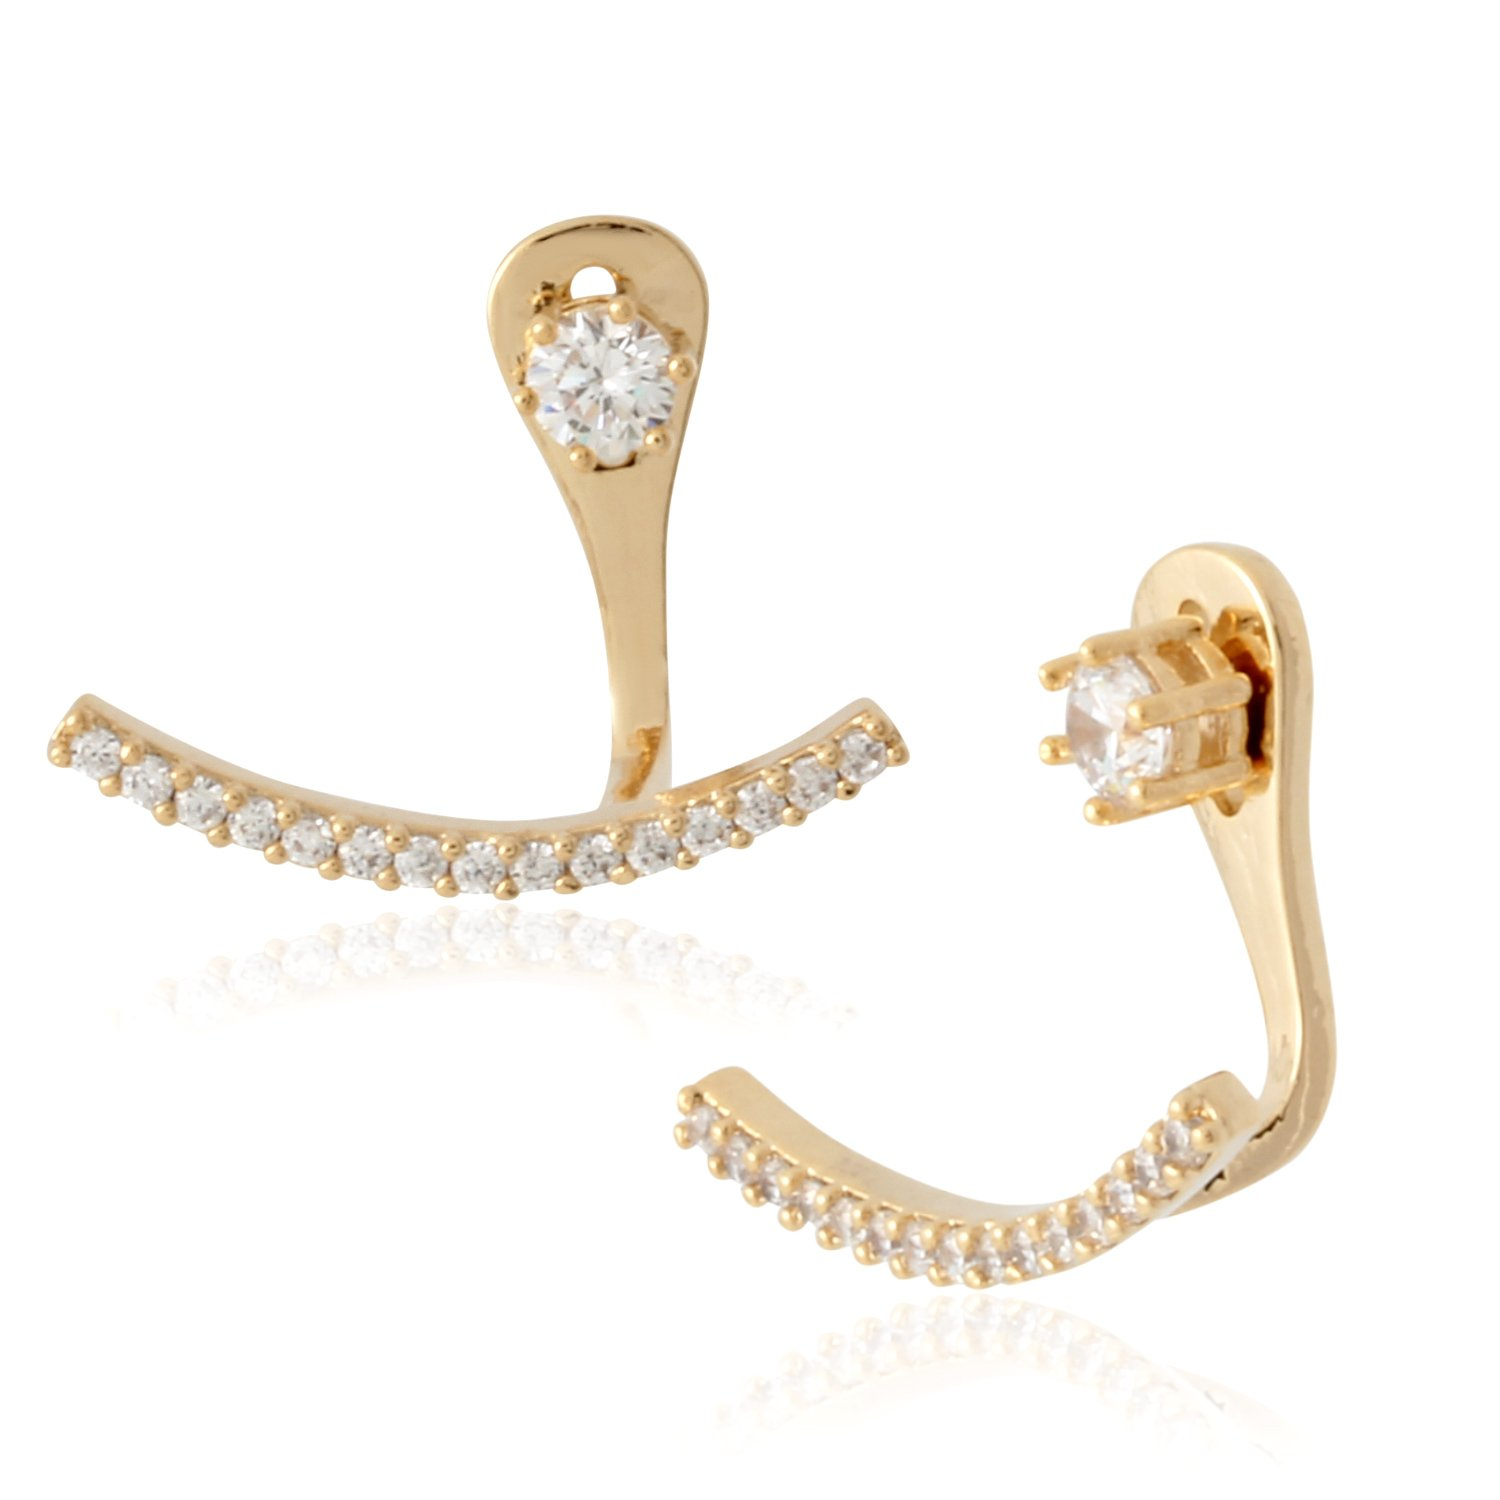 Front Back 2 in 1 Round Cubic Zirconia AAA Quality Stud and Ear Jacket Cuff Earrings by Lovey Lovey